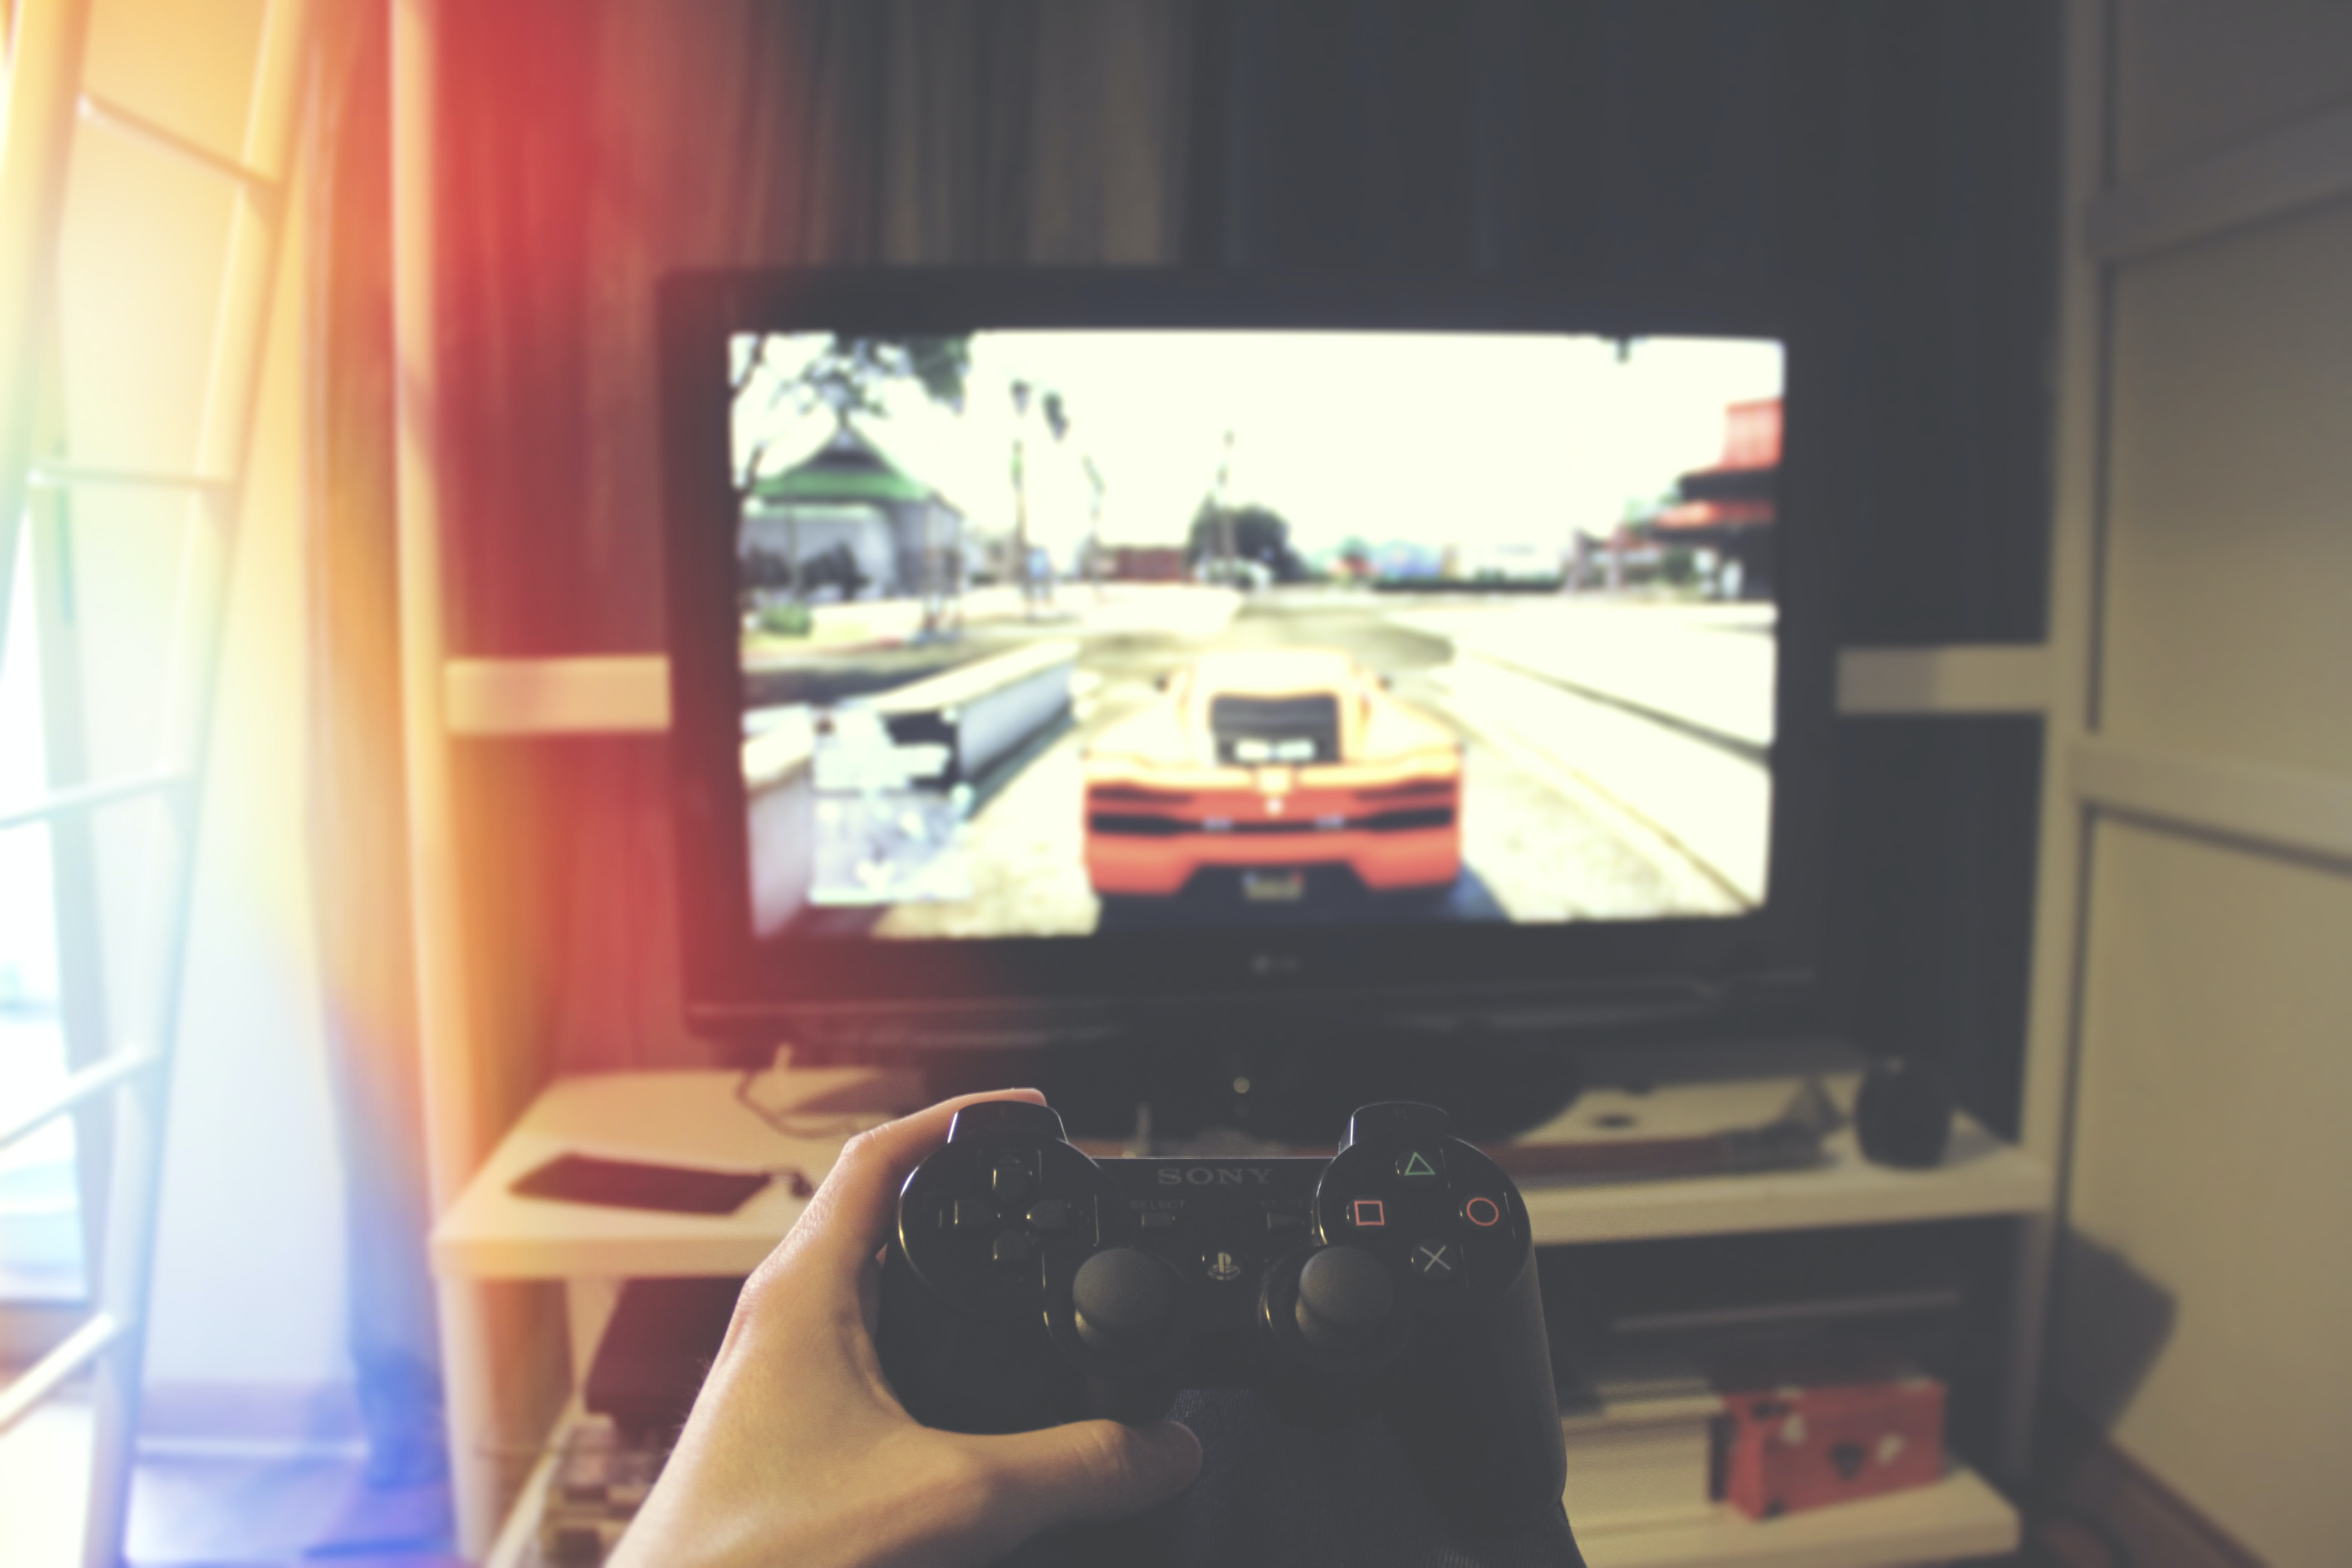 person holding Sony PS3 controller in front of flat screen monitor